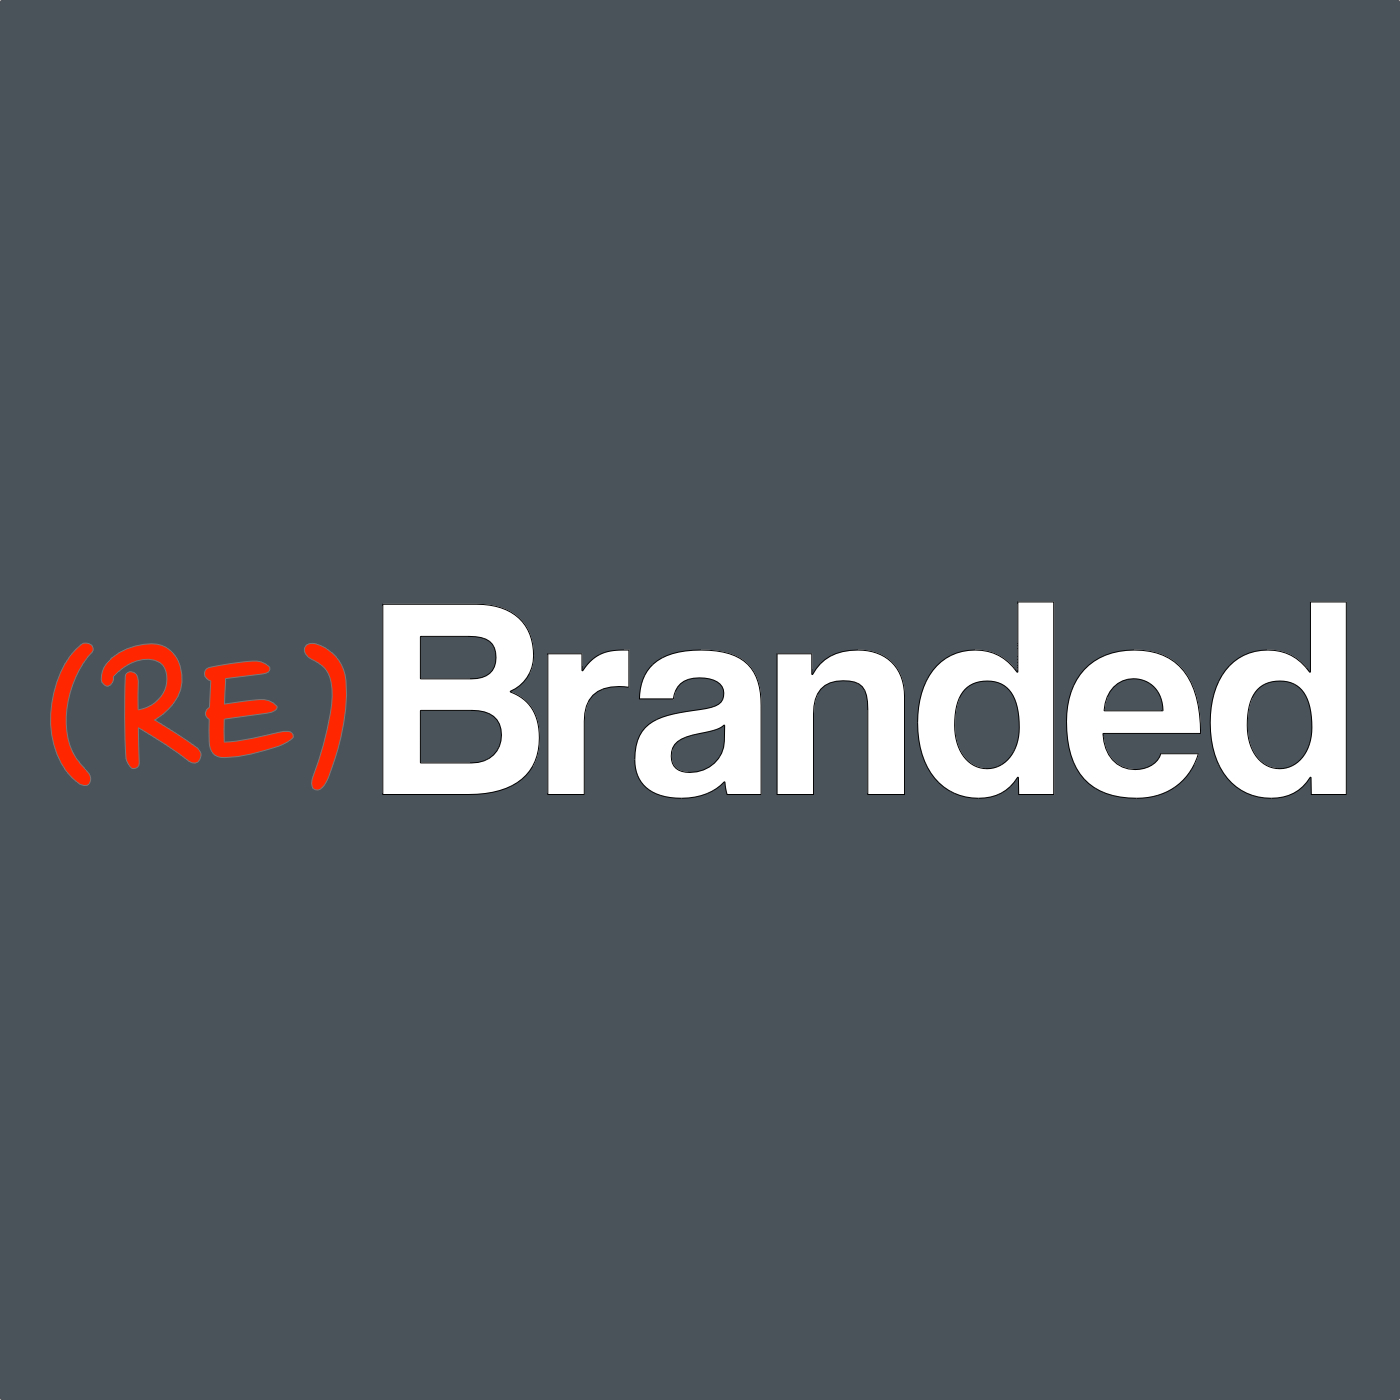 (re)branded - Bryan Mortensen